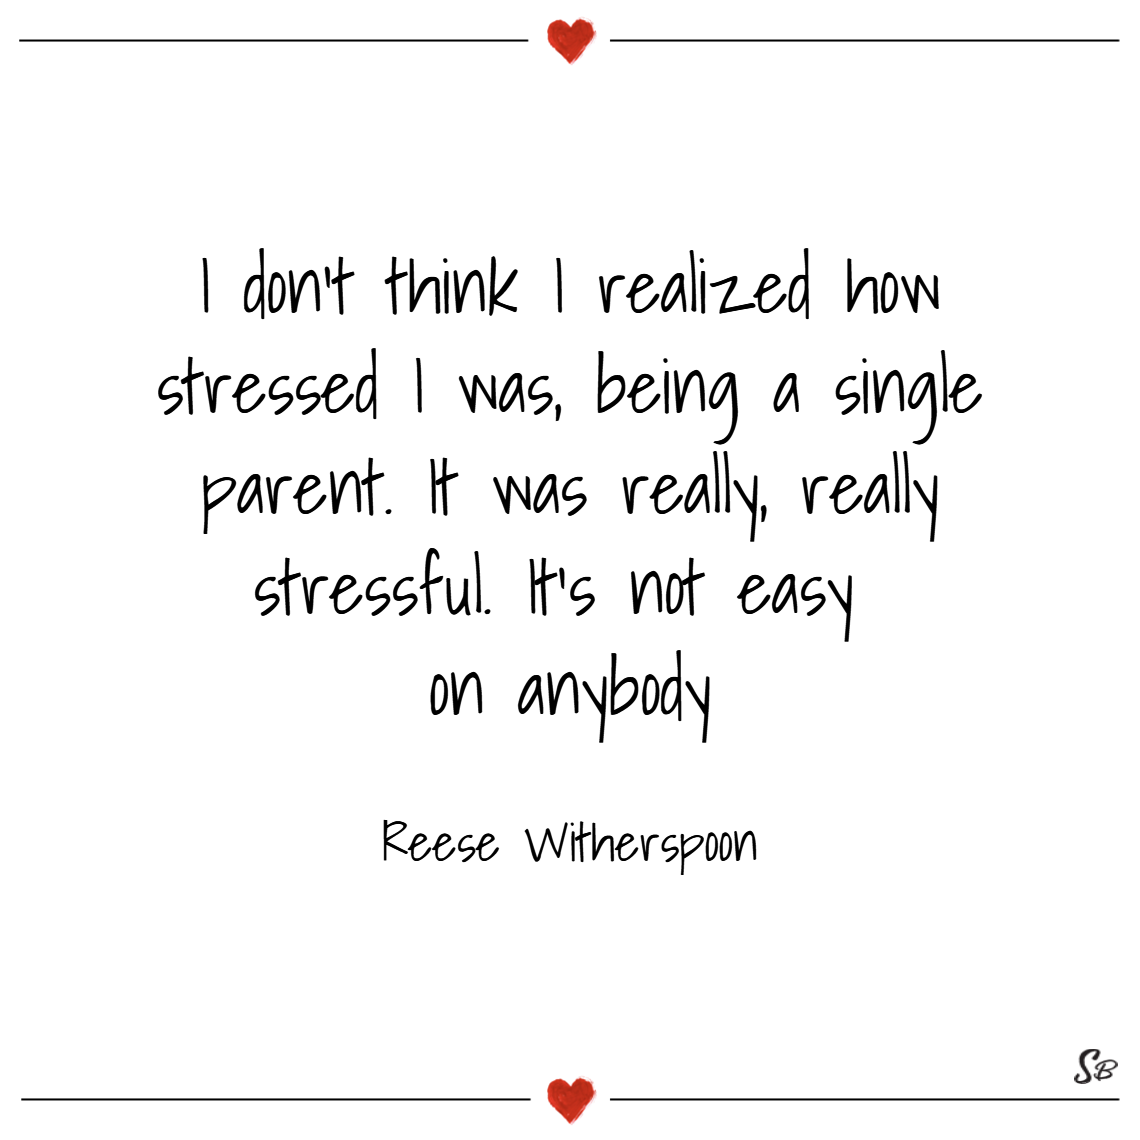 I don't think i realized how stressed i was, being a single parent. it was really, really stressful. it's not easy on anybody. – reese witherspoon